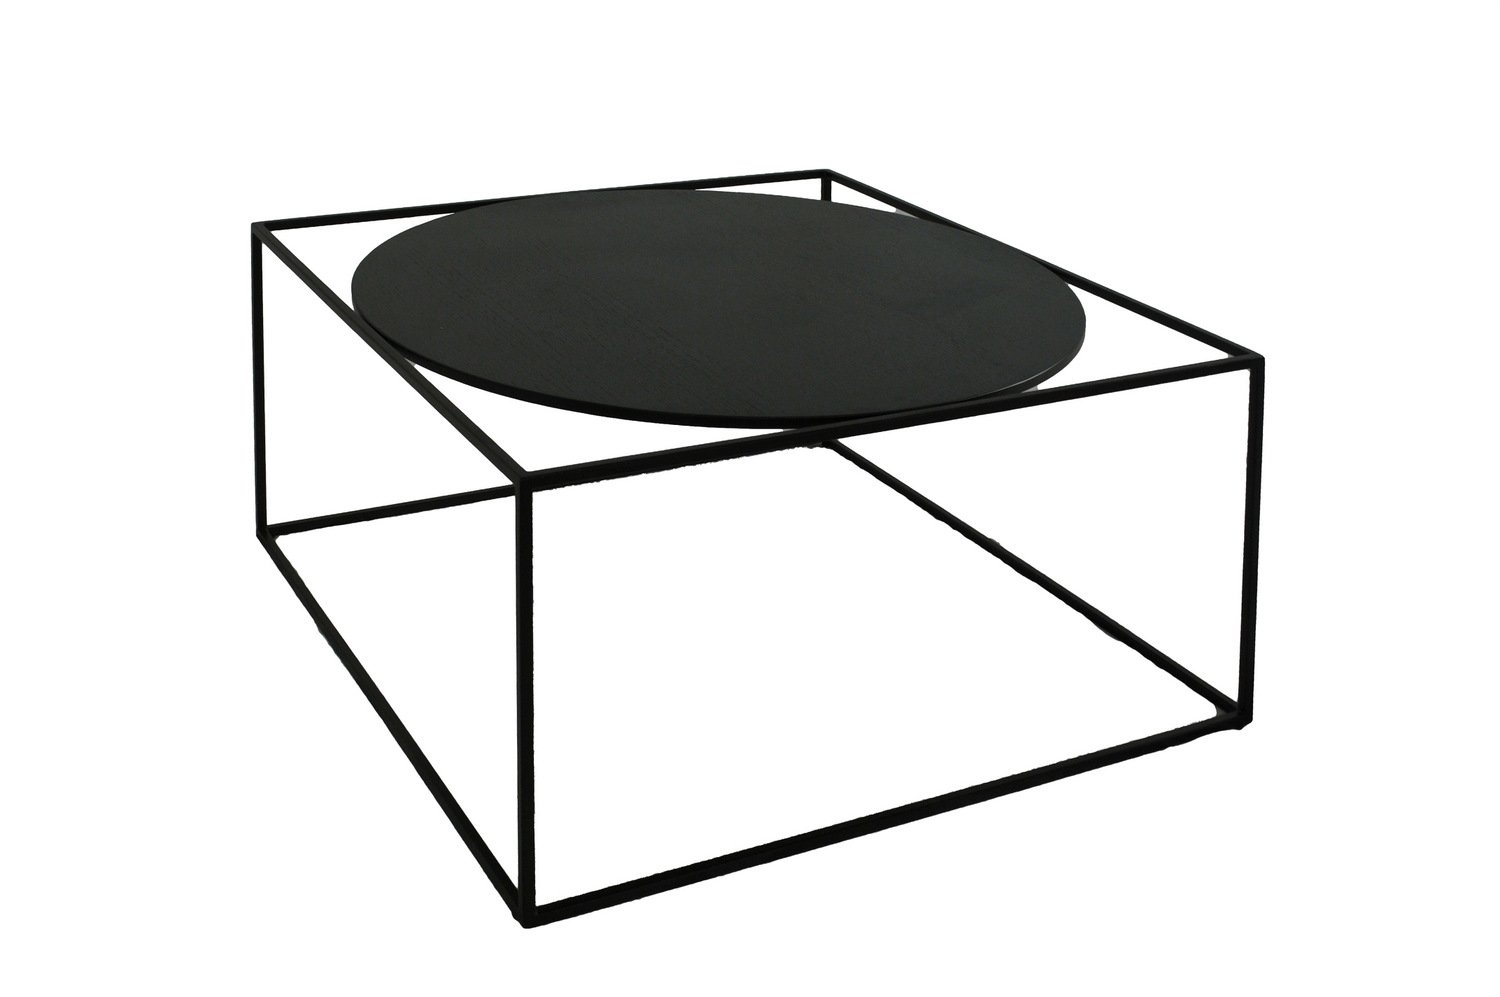 g3 wooden coffee table by roche bobois design johan lindst n. Black Bedroom Furniture Sets. Home Design Ideas